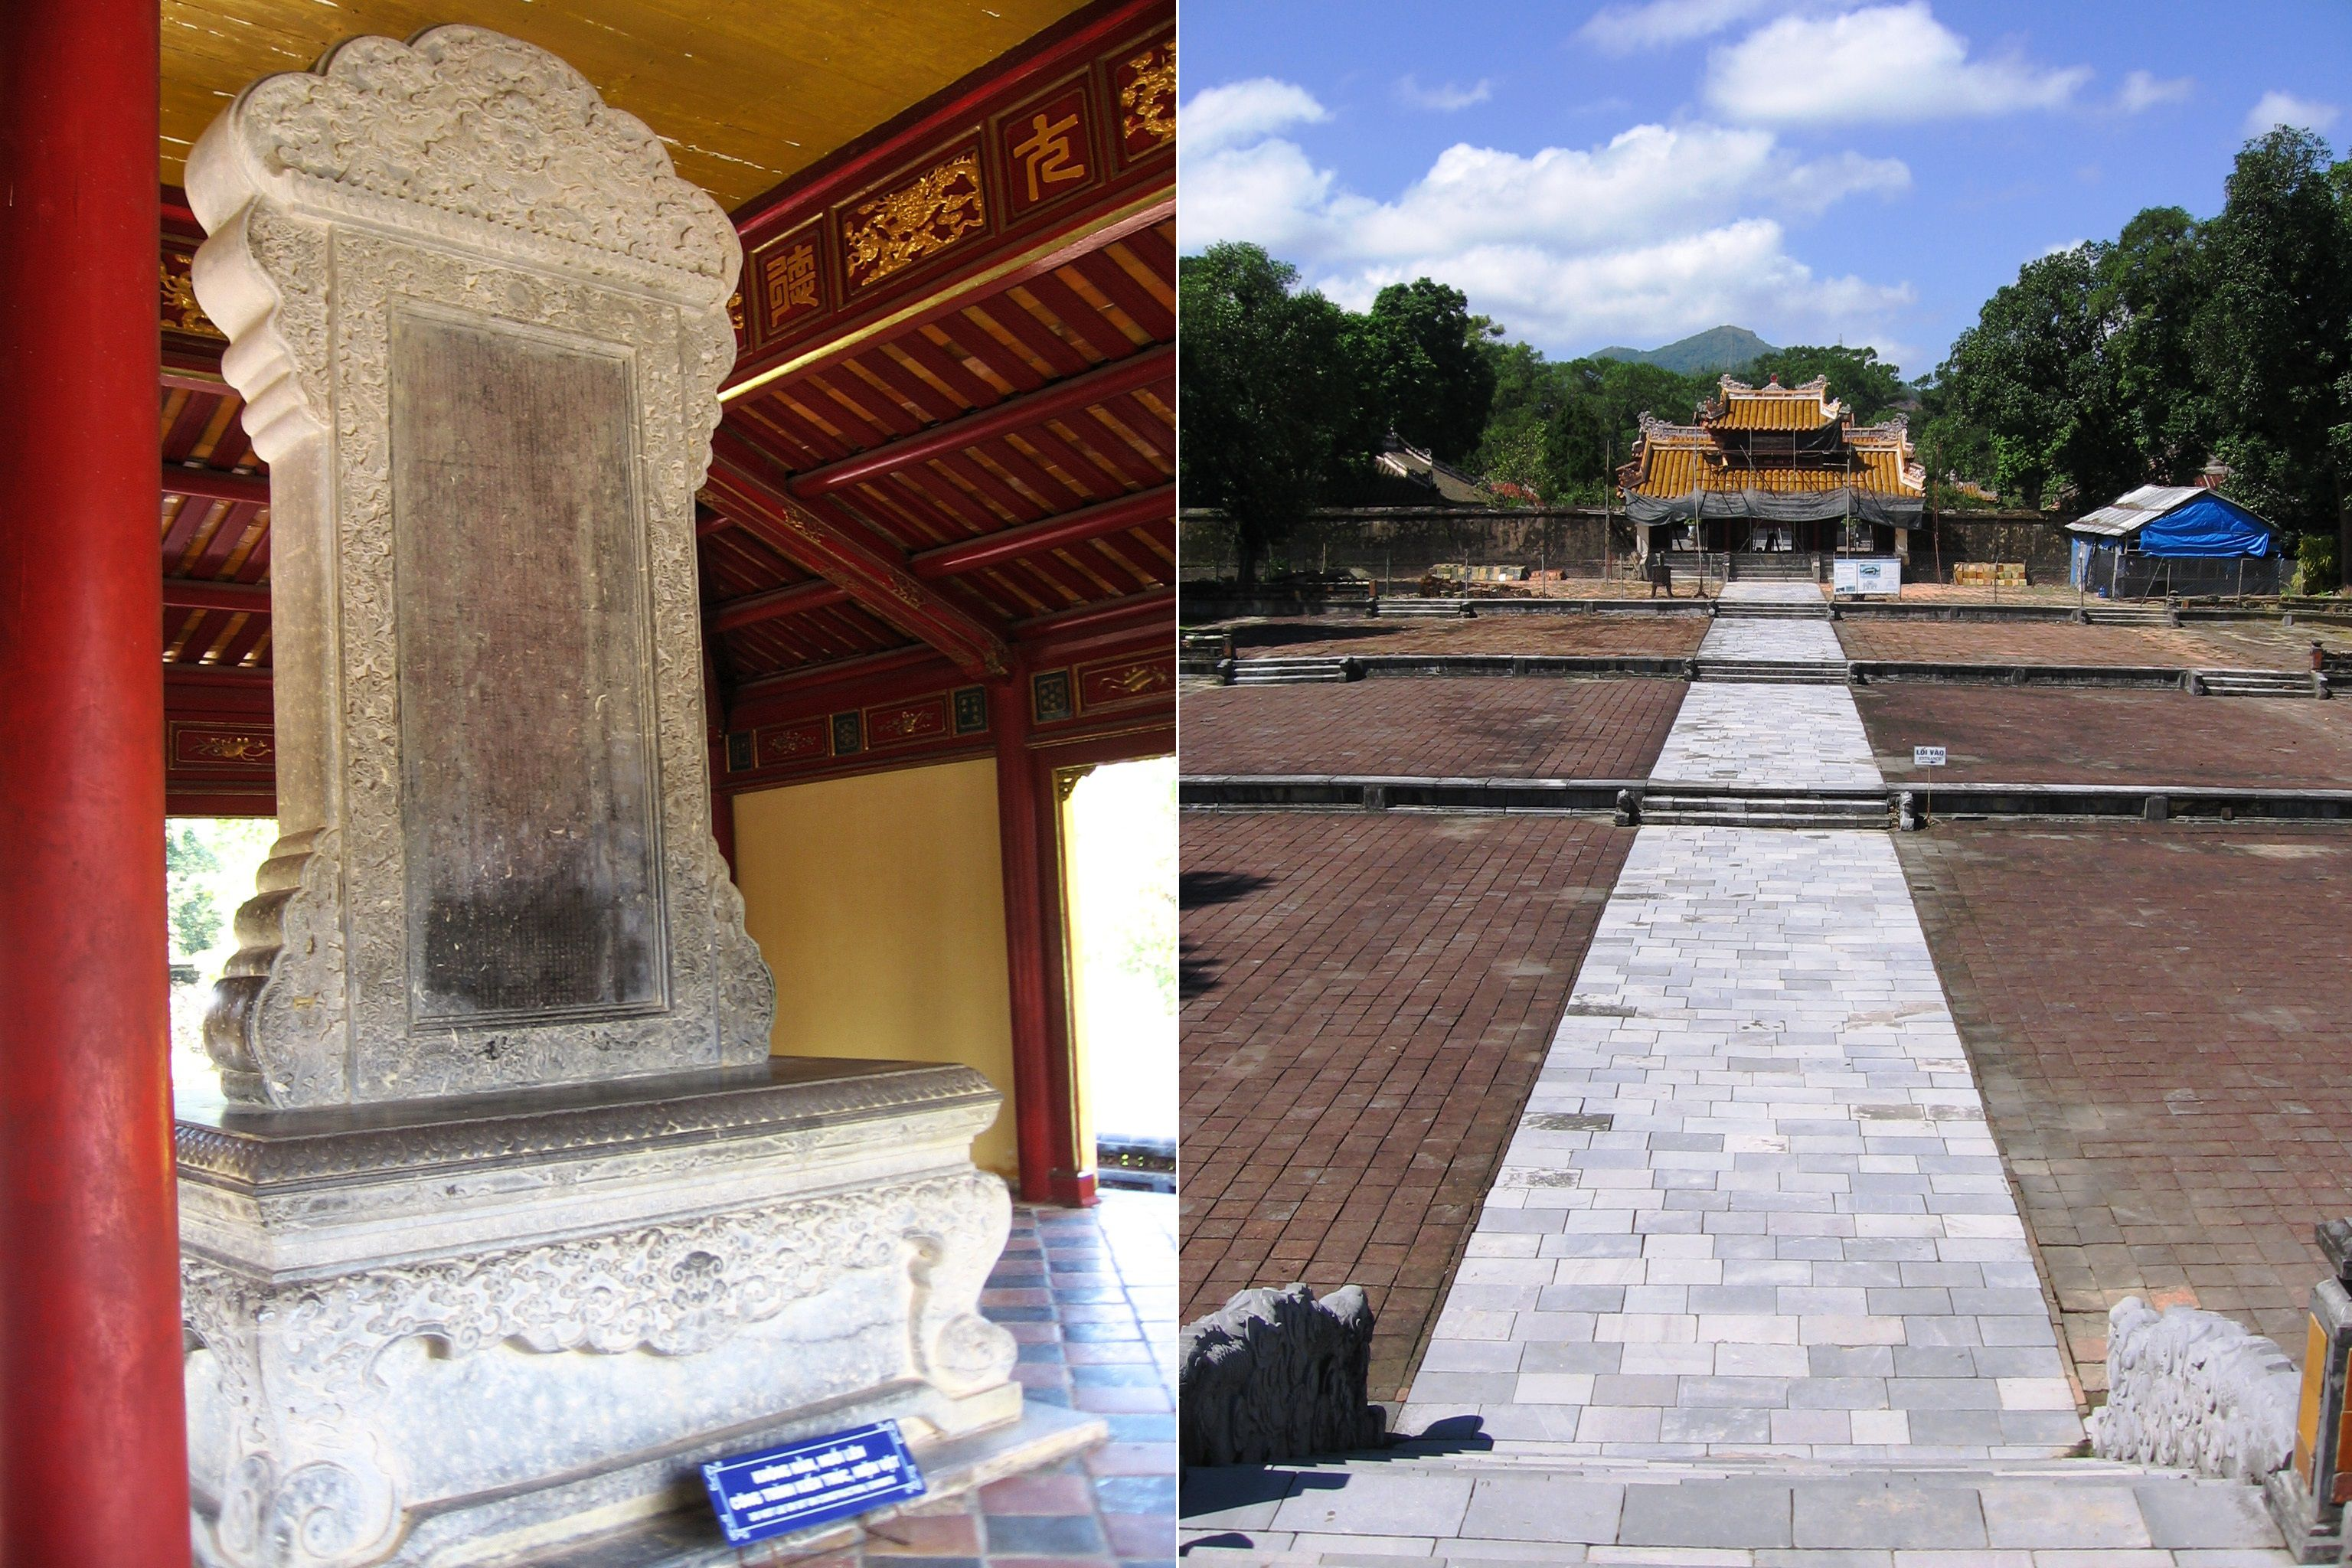 Thanh Duc Than Cong stele on the left; view looking west from the Stele Pavilion on the right